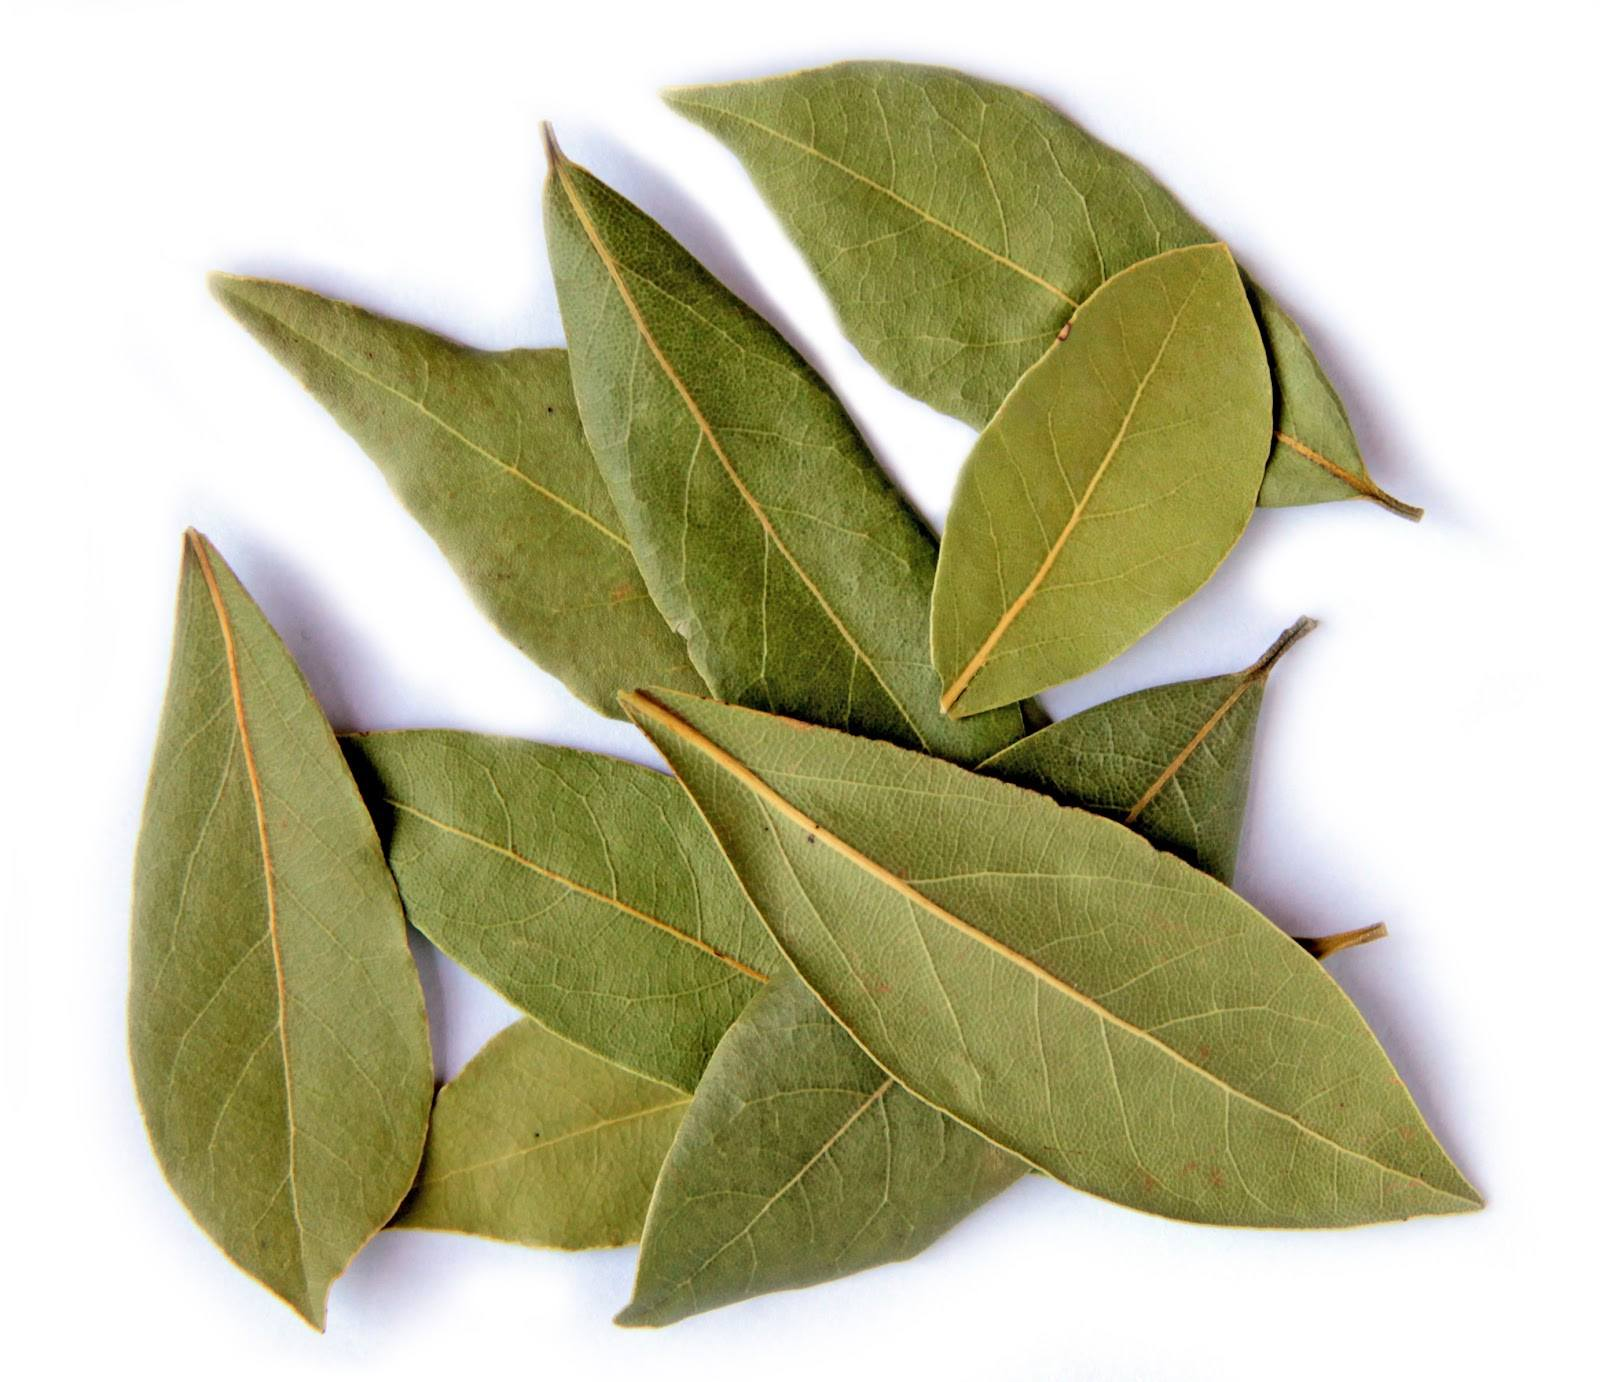 Bay Leaves 50g - Spice Kitchen - Spices, Spice Blends, Gifts & Cookware